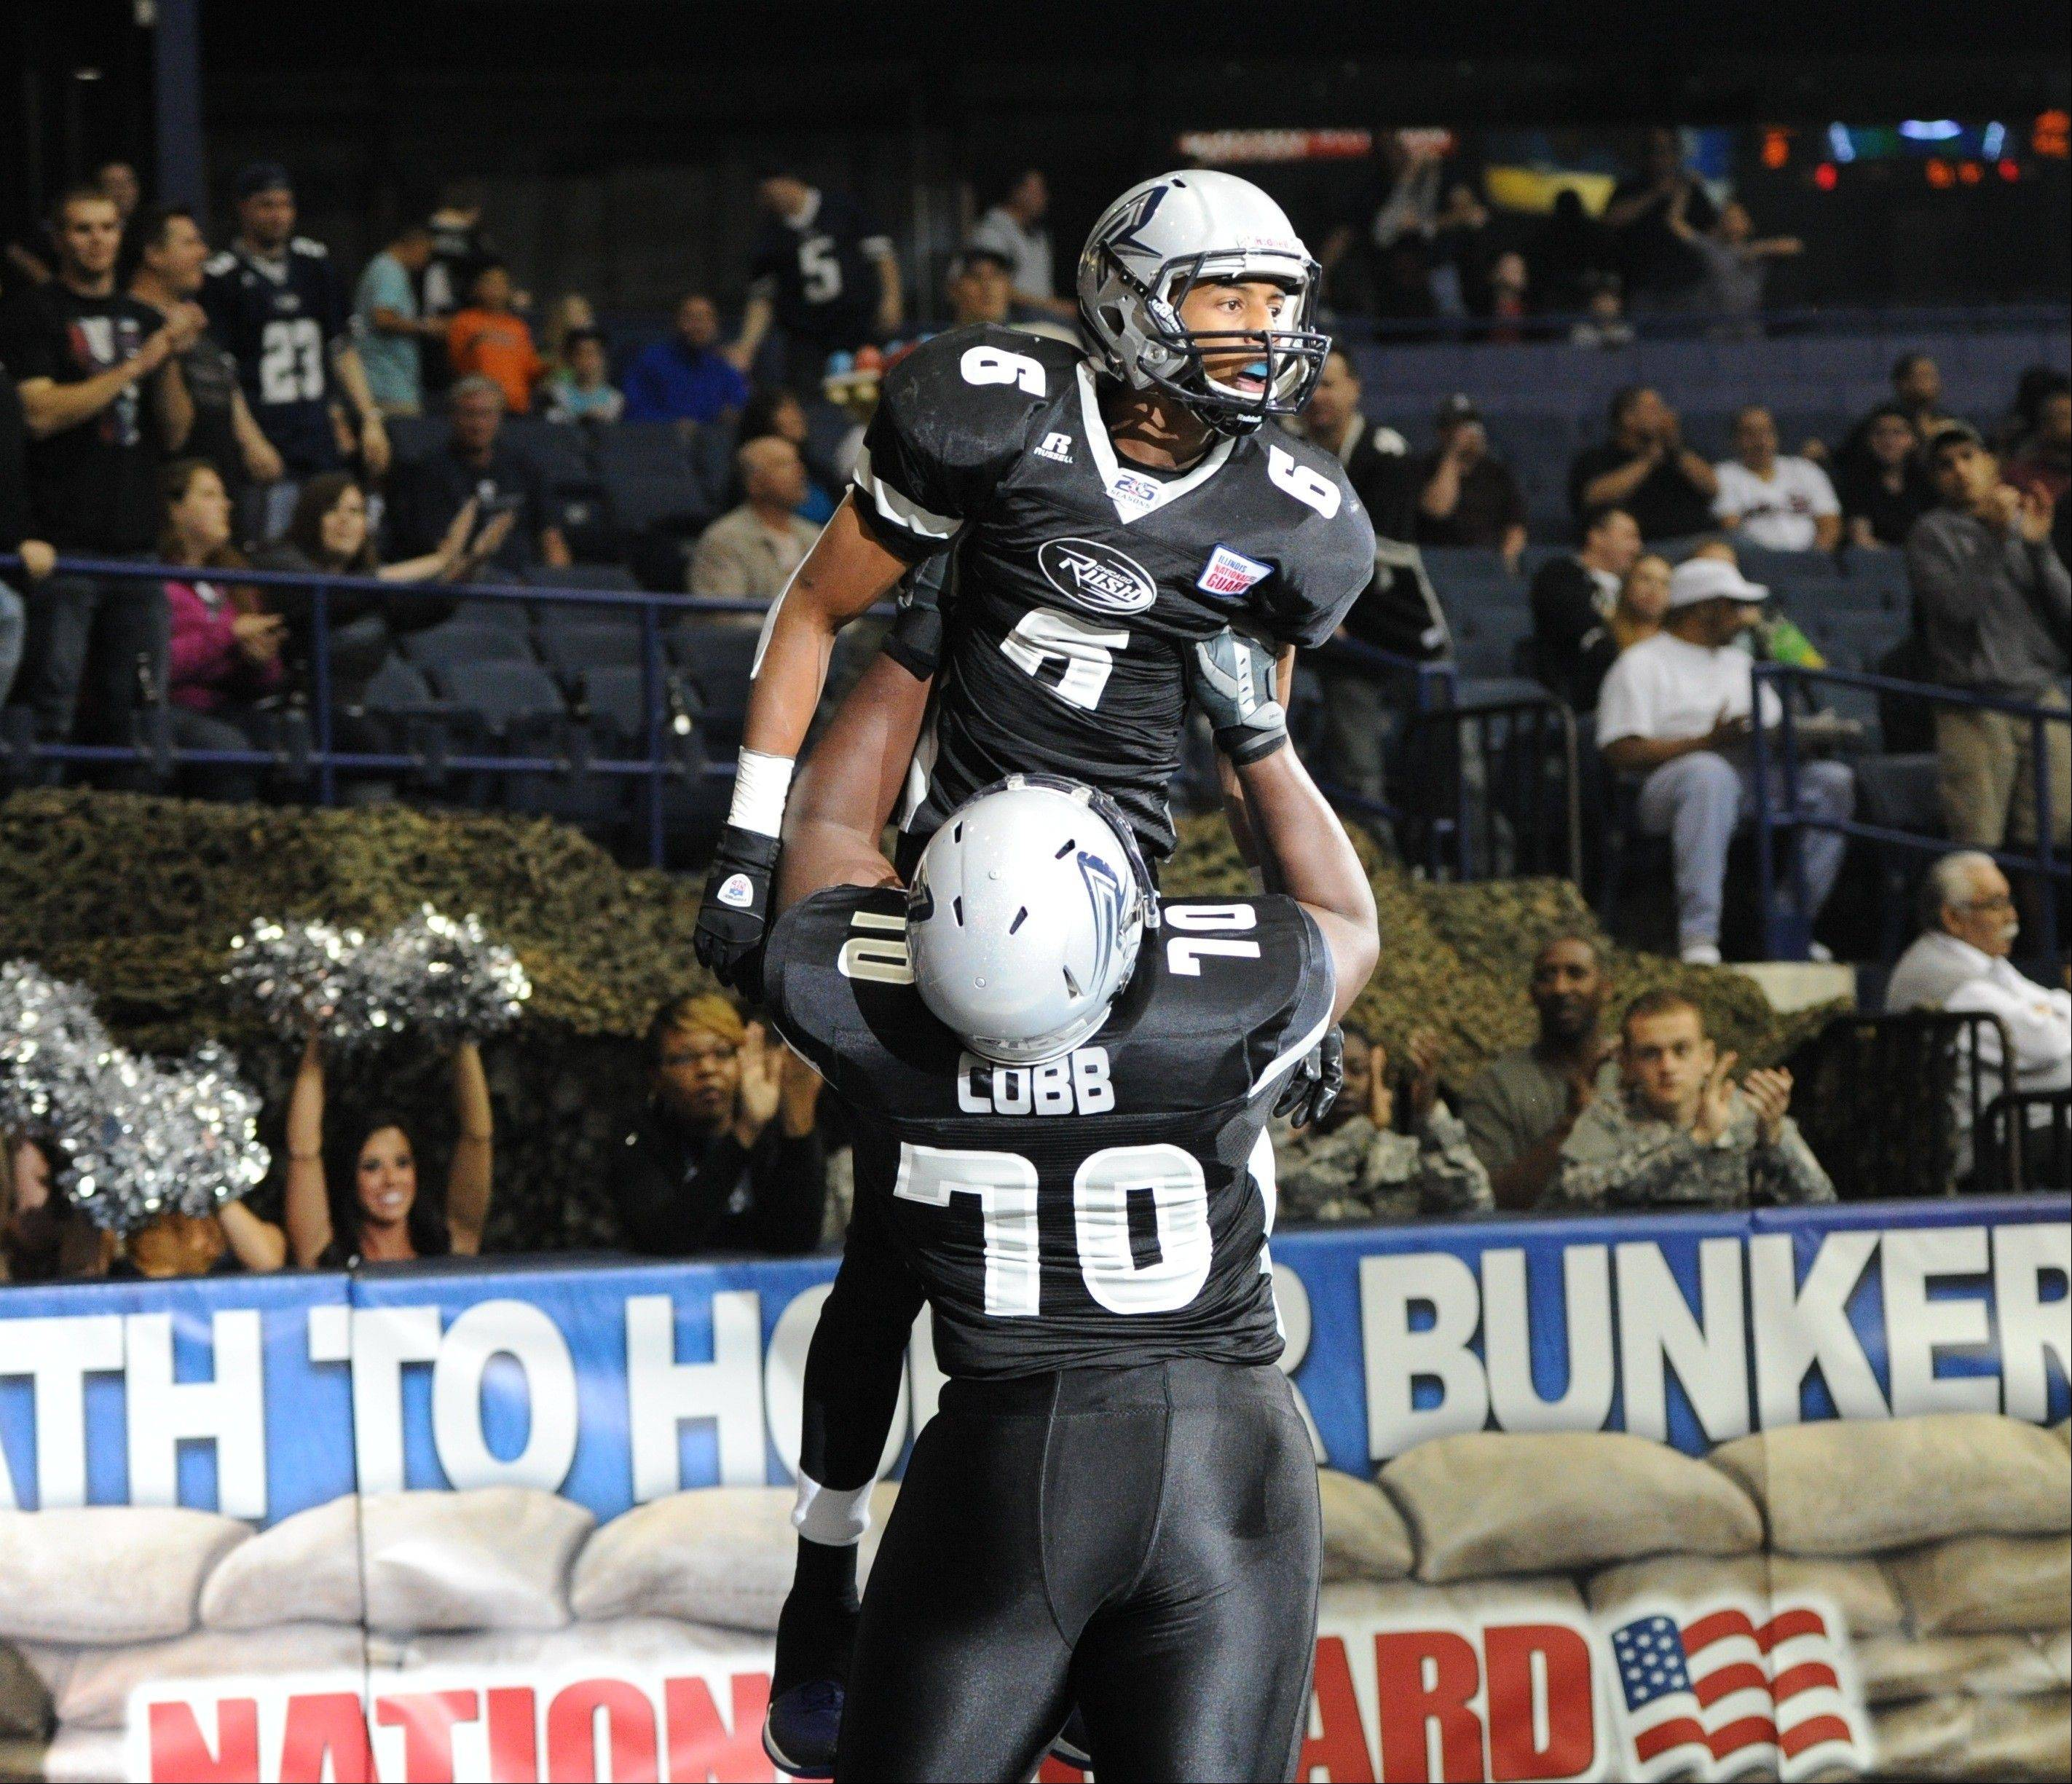 Jared Perry celebrates another big reception and score for the Chicago Rush. The AFL Rookie of the Year scored 33 touchdowns and had 133 catches for the Chicago franchise.